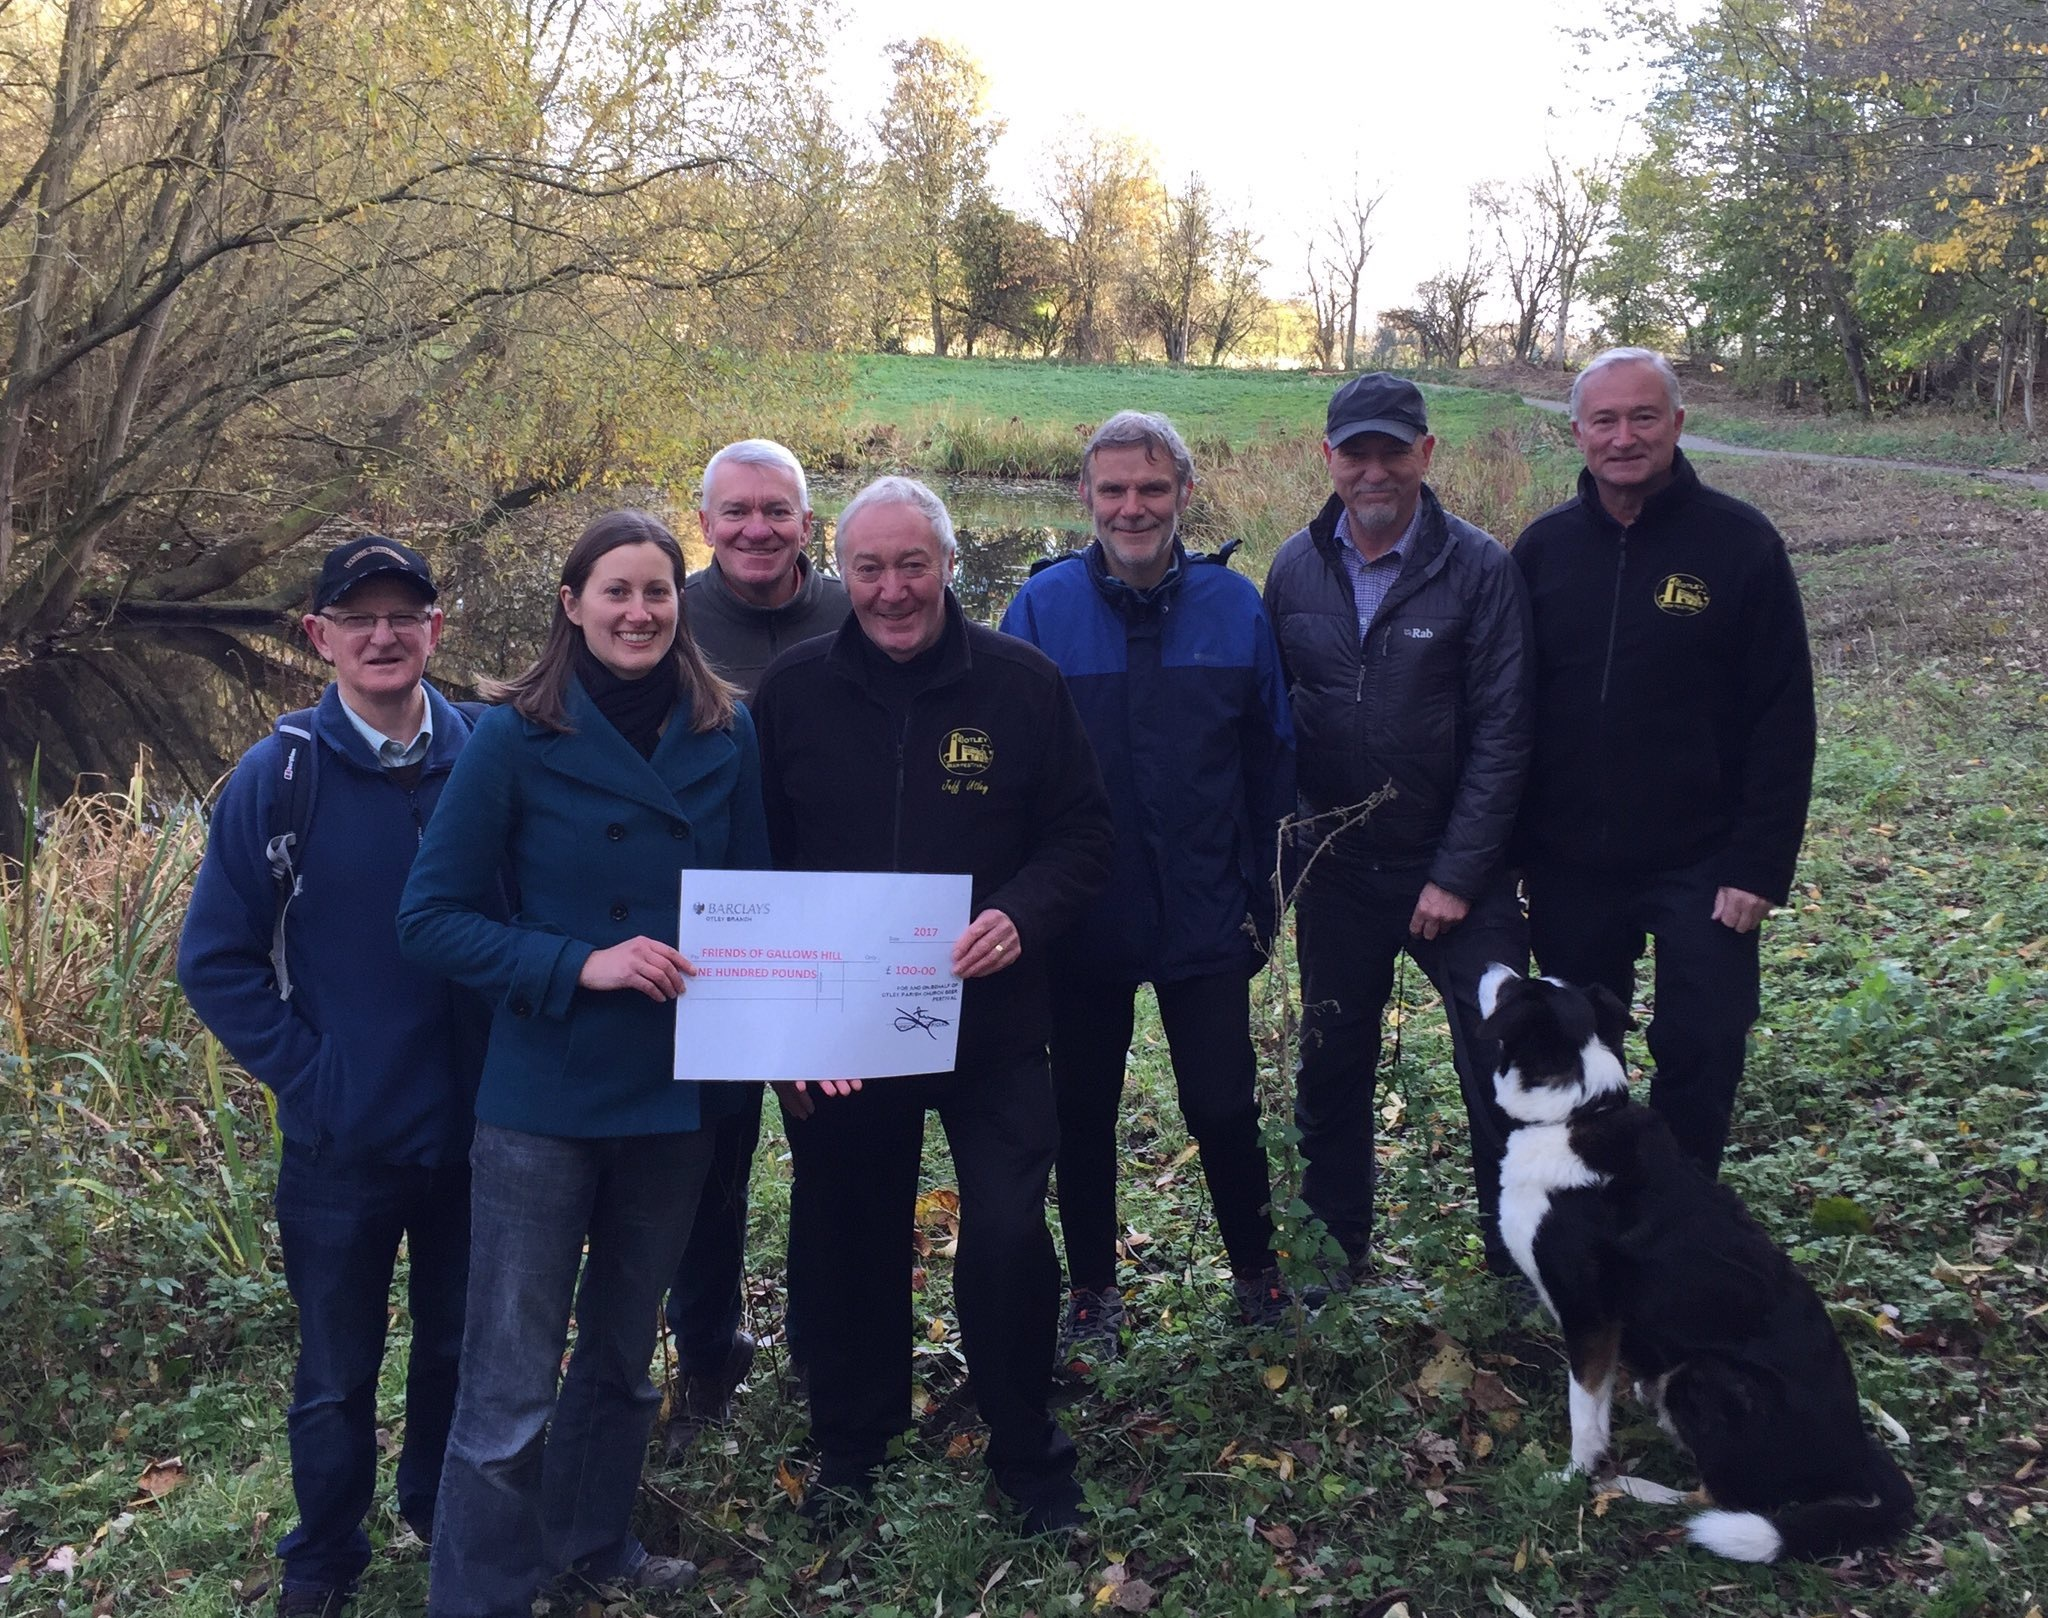 Karen Rumsey from the Friends of Gallows Hill receiving a cheque from Jeff Utley and fellow organisers of Otley Beer Festival, with Town Council Chair Ray Georgeson (second from right, back row)